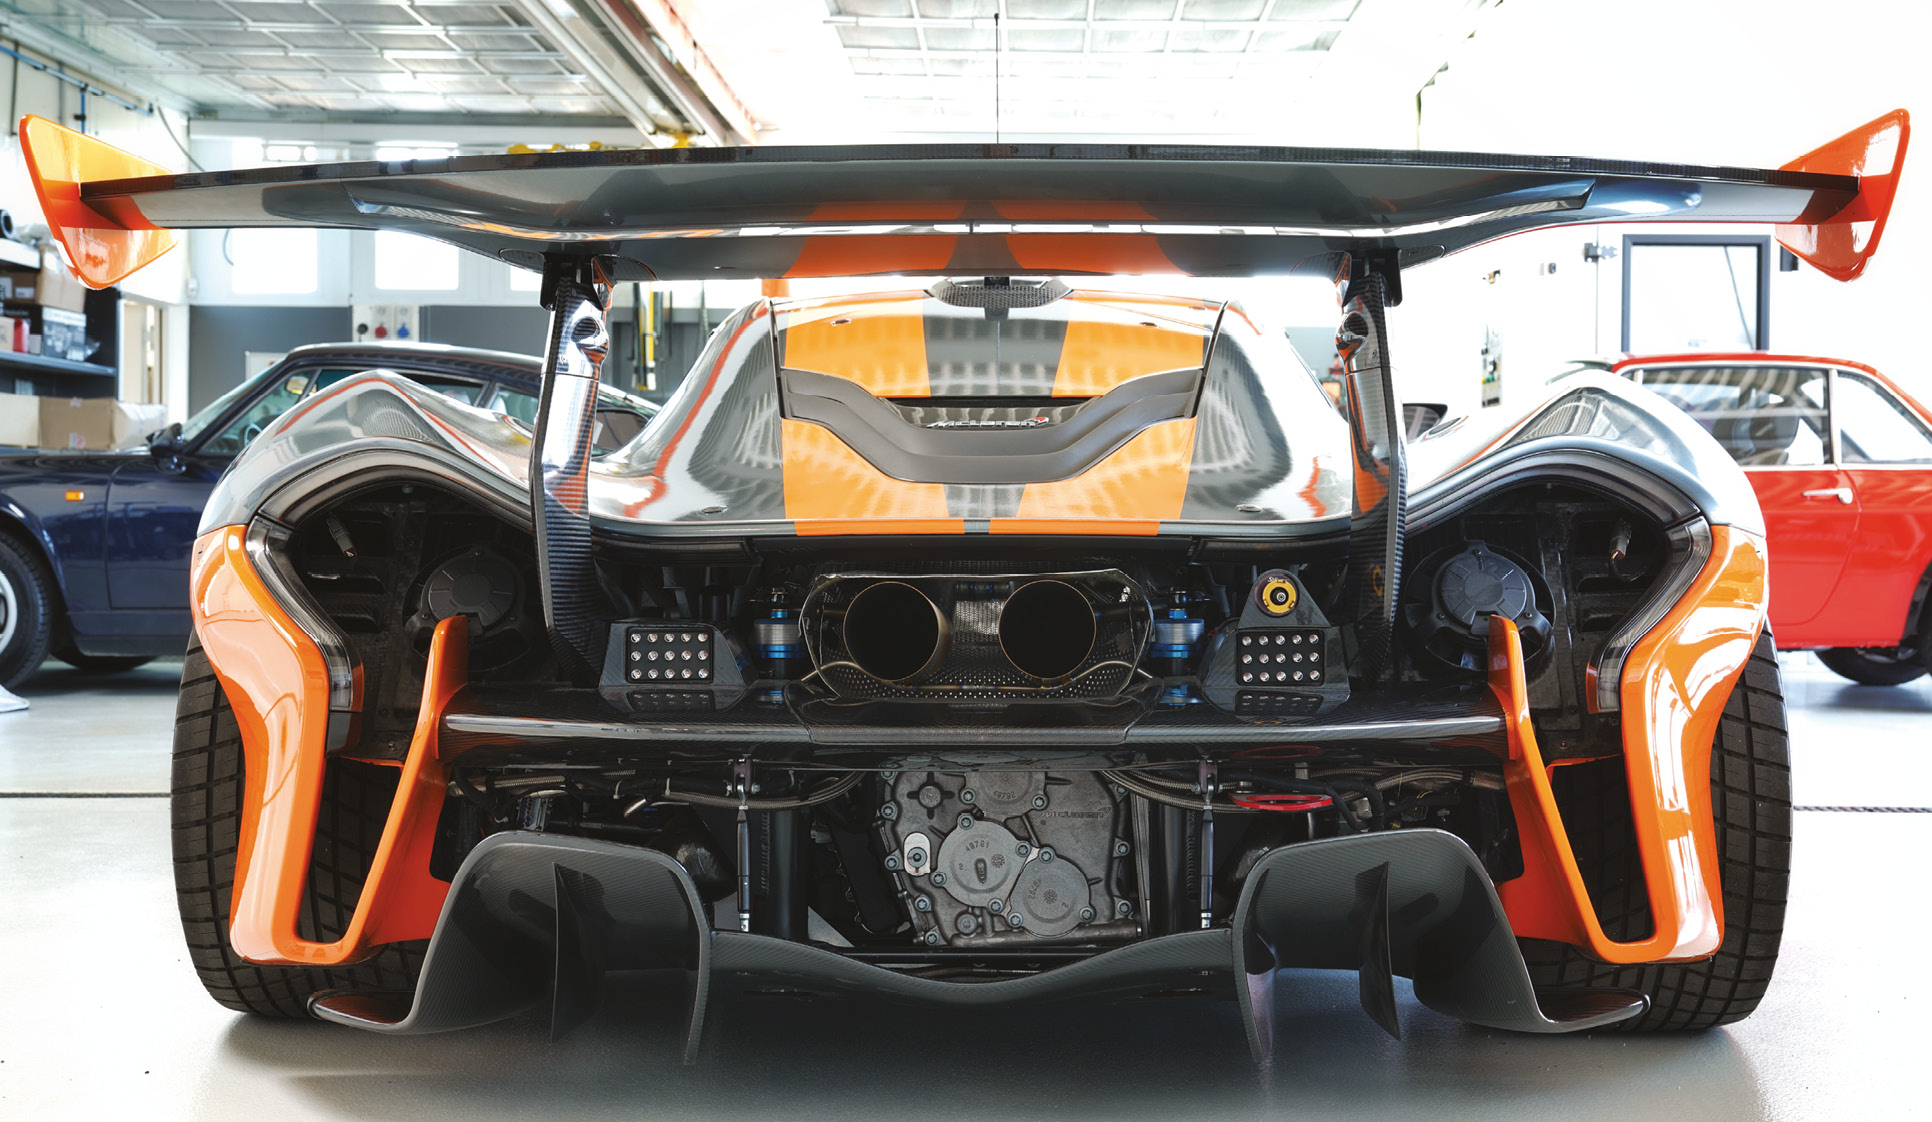 A cocktail of carbon and aero sophistication, this is chassis number 10 of the 58 P1 GTRs McLaren made